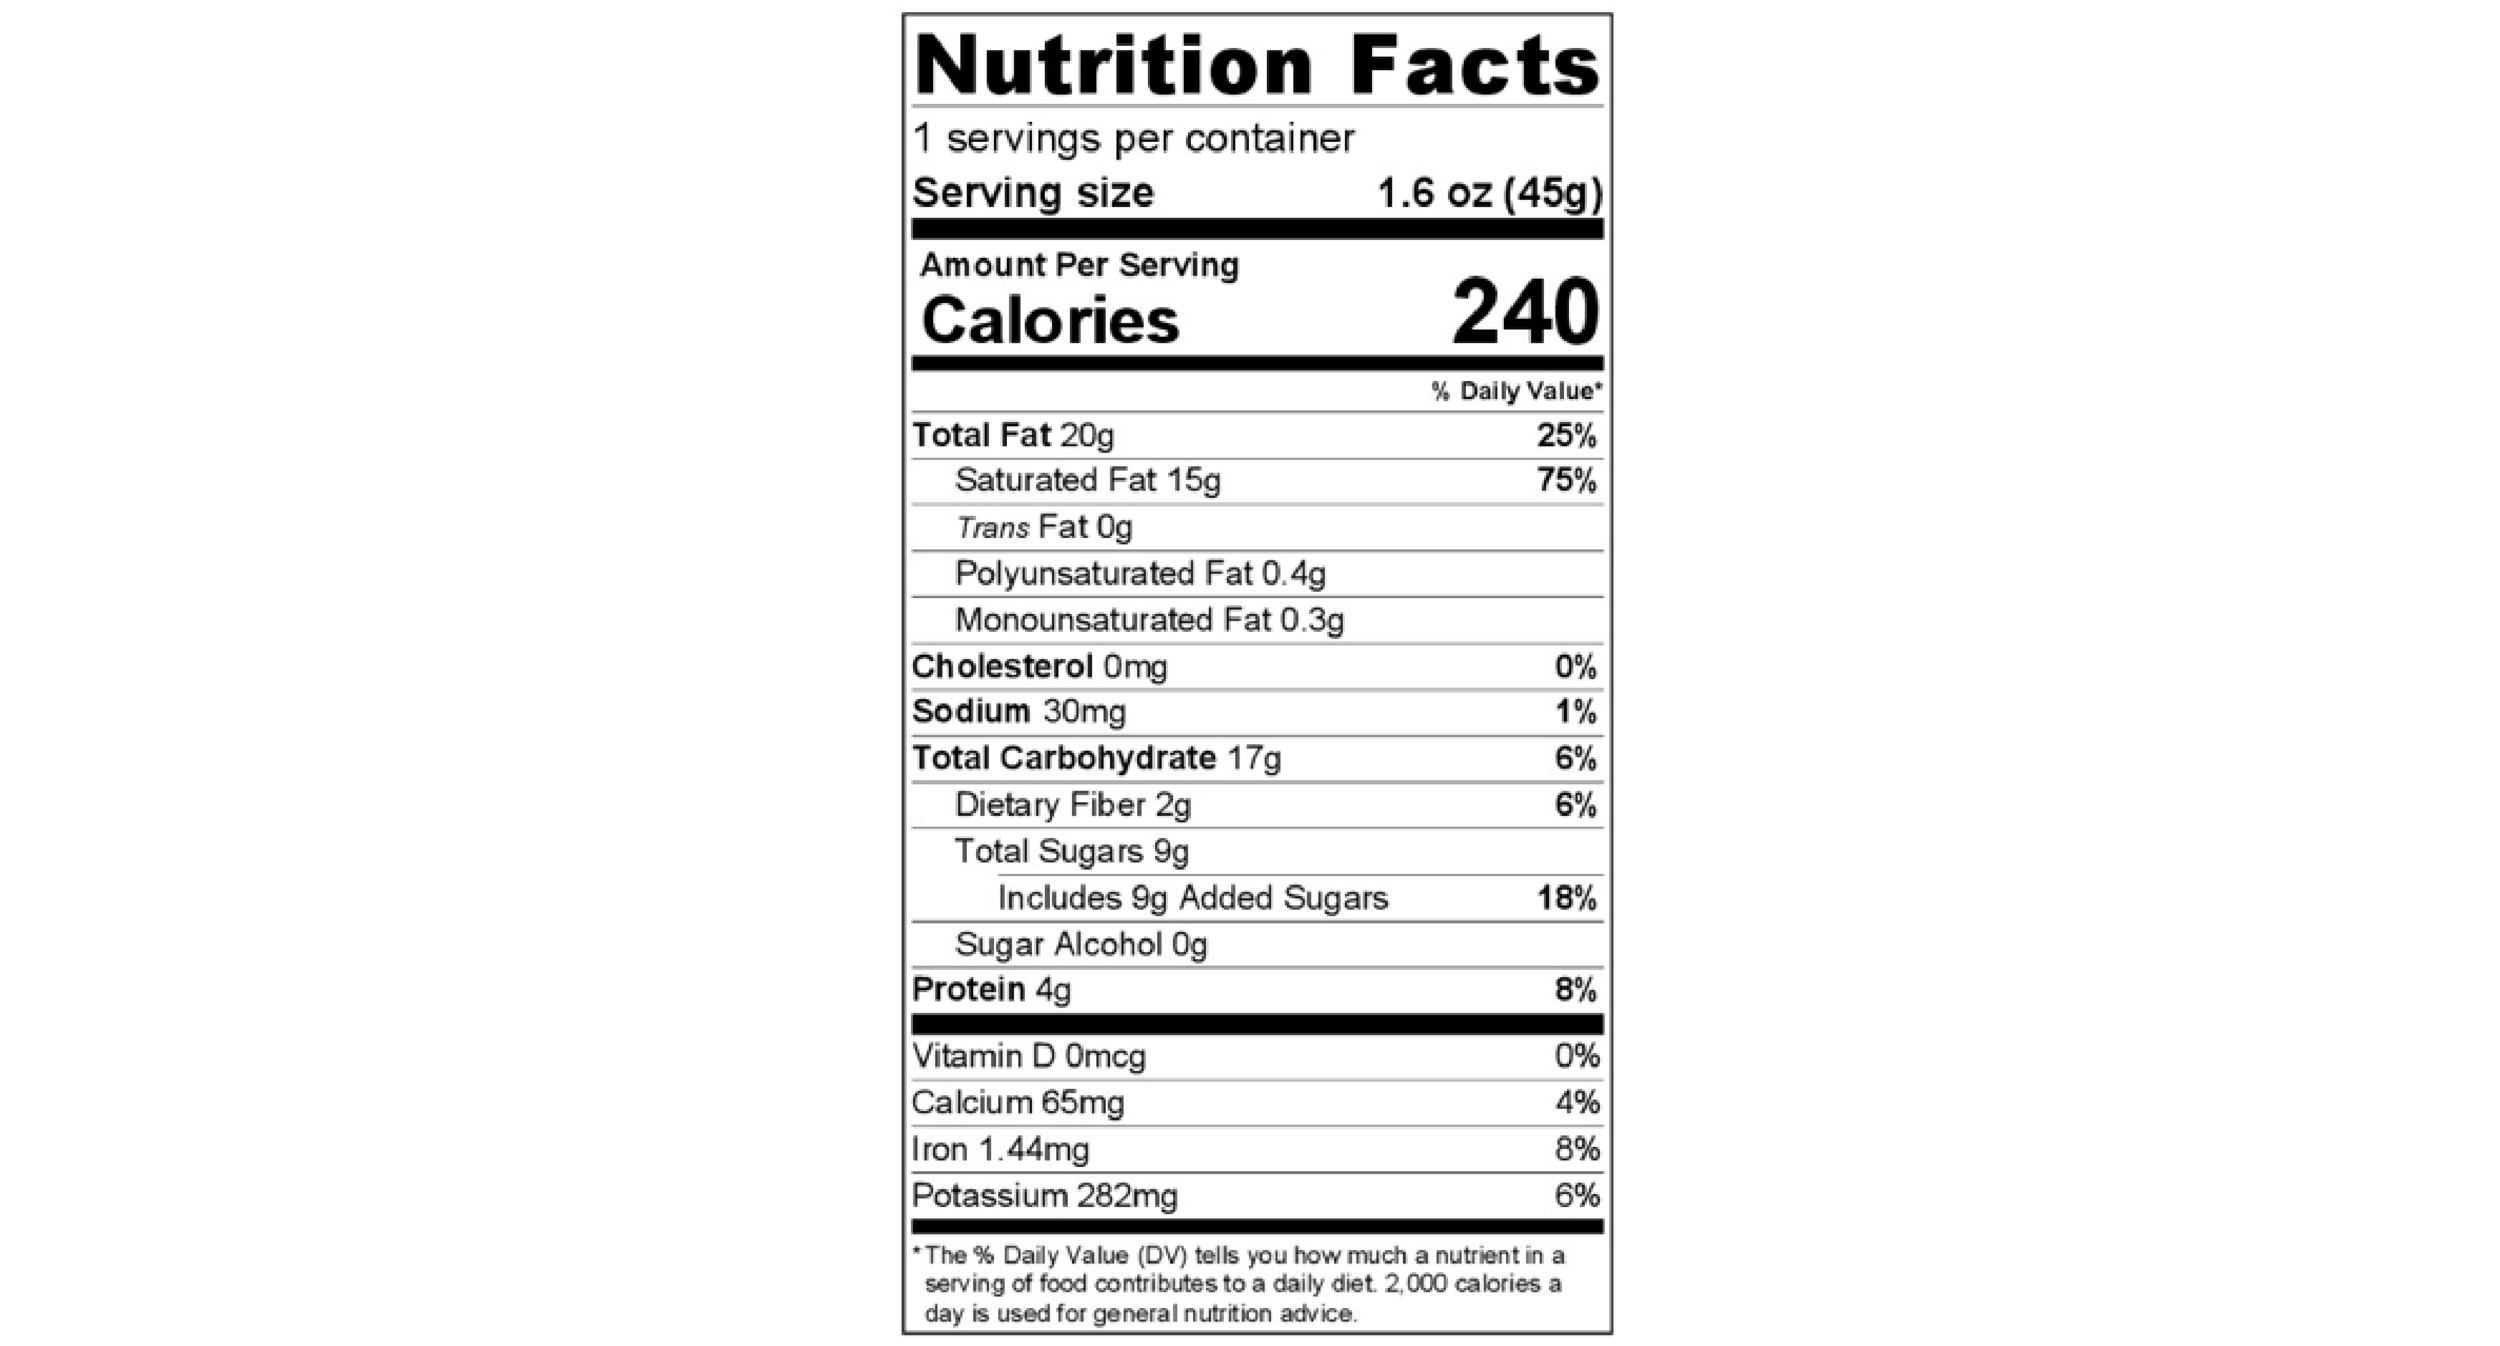 Megaroon_nutrition_facts_white_background.png